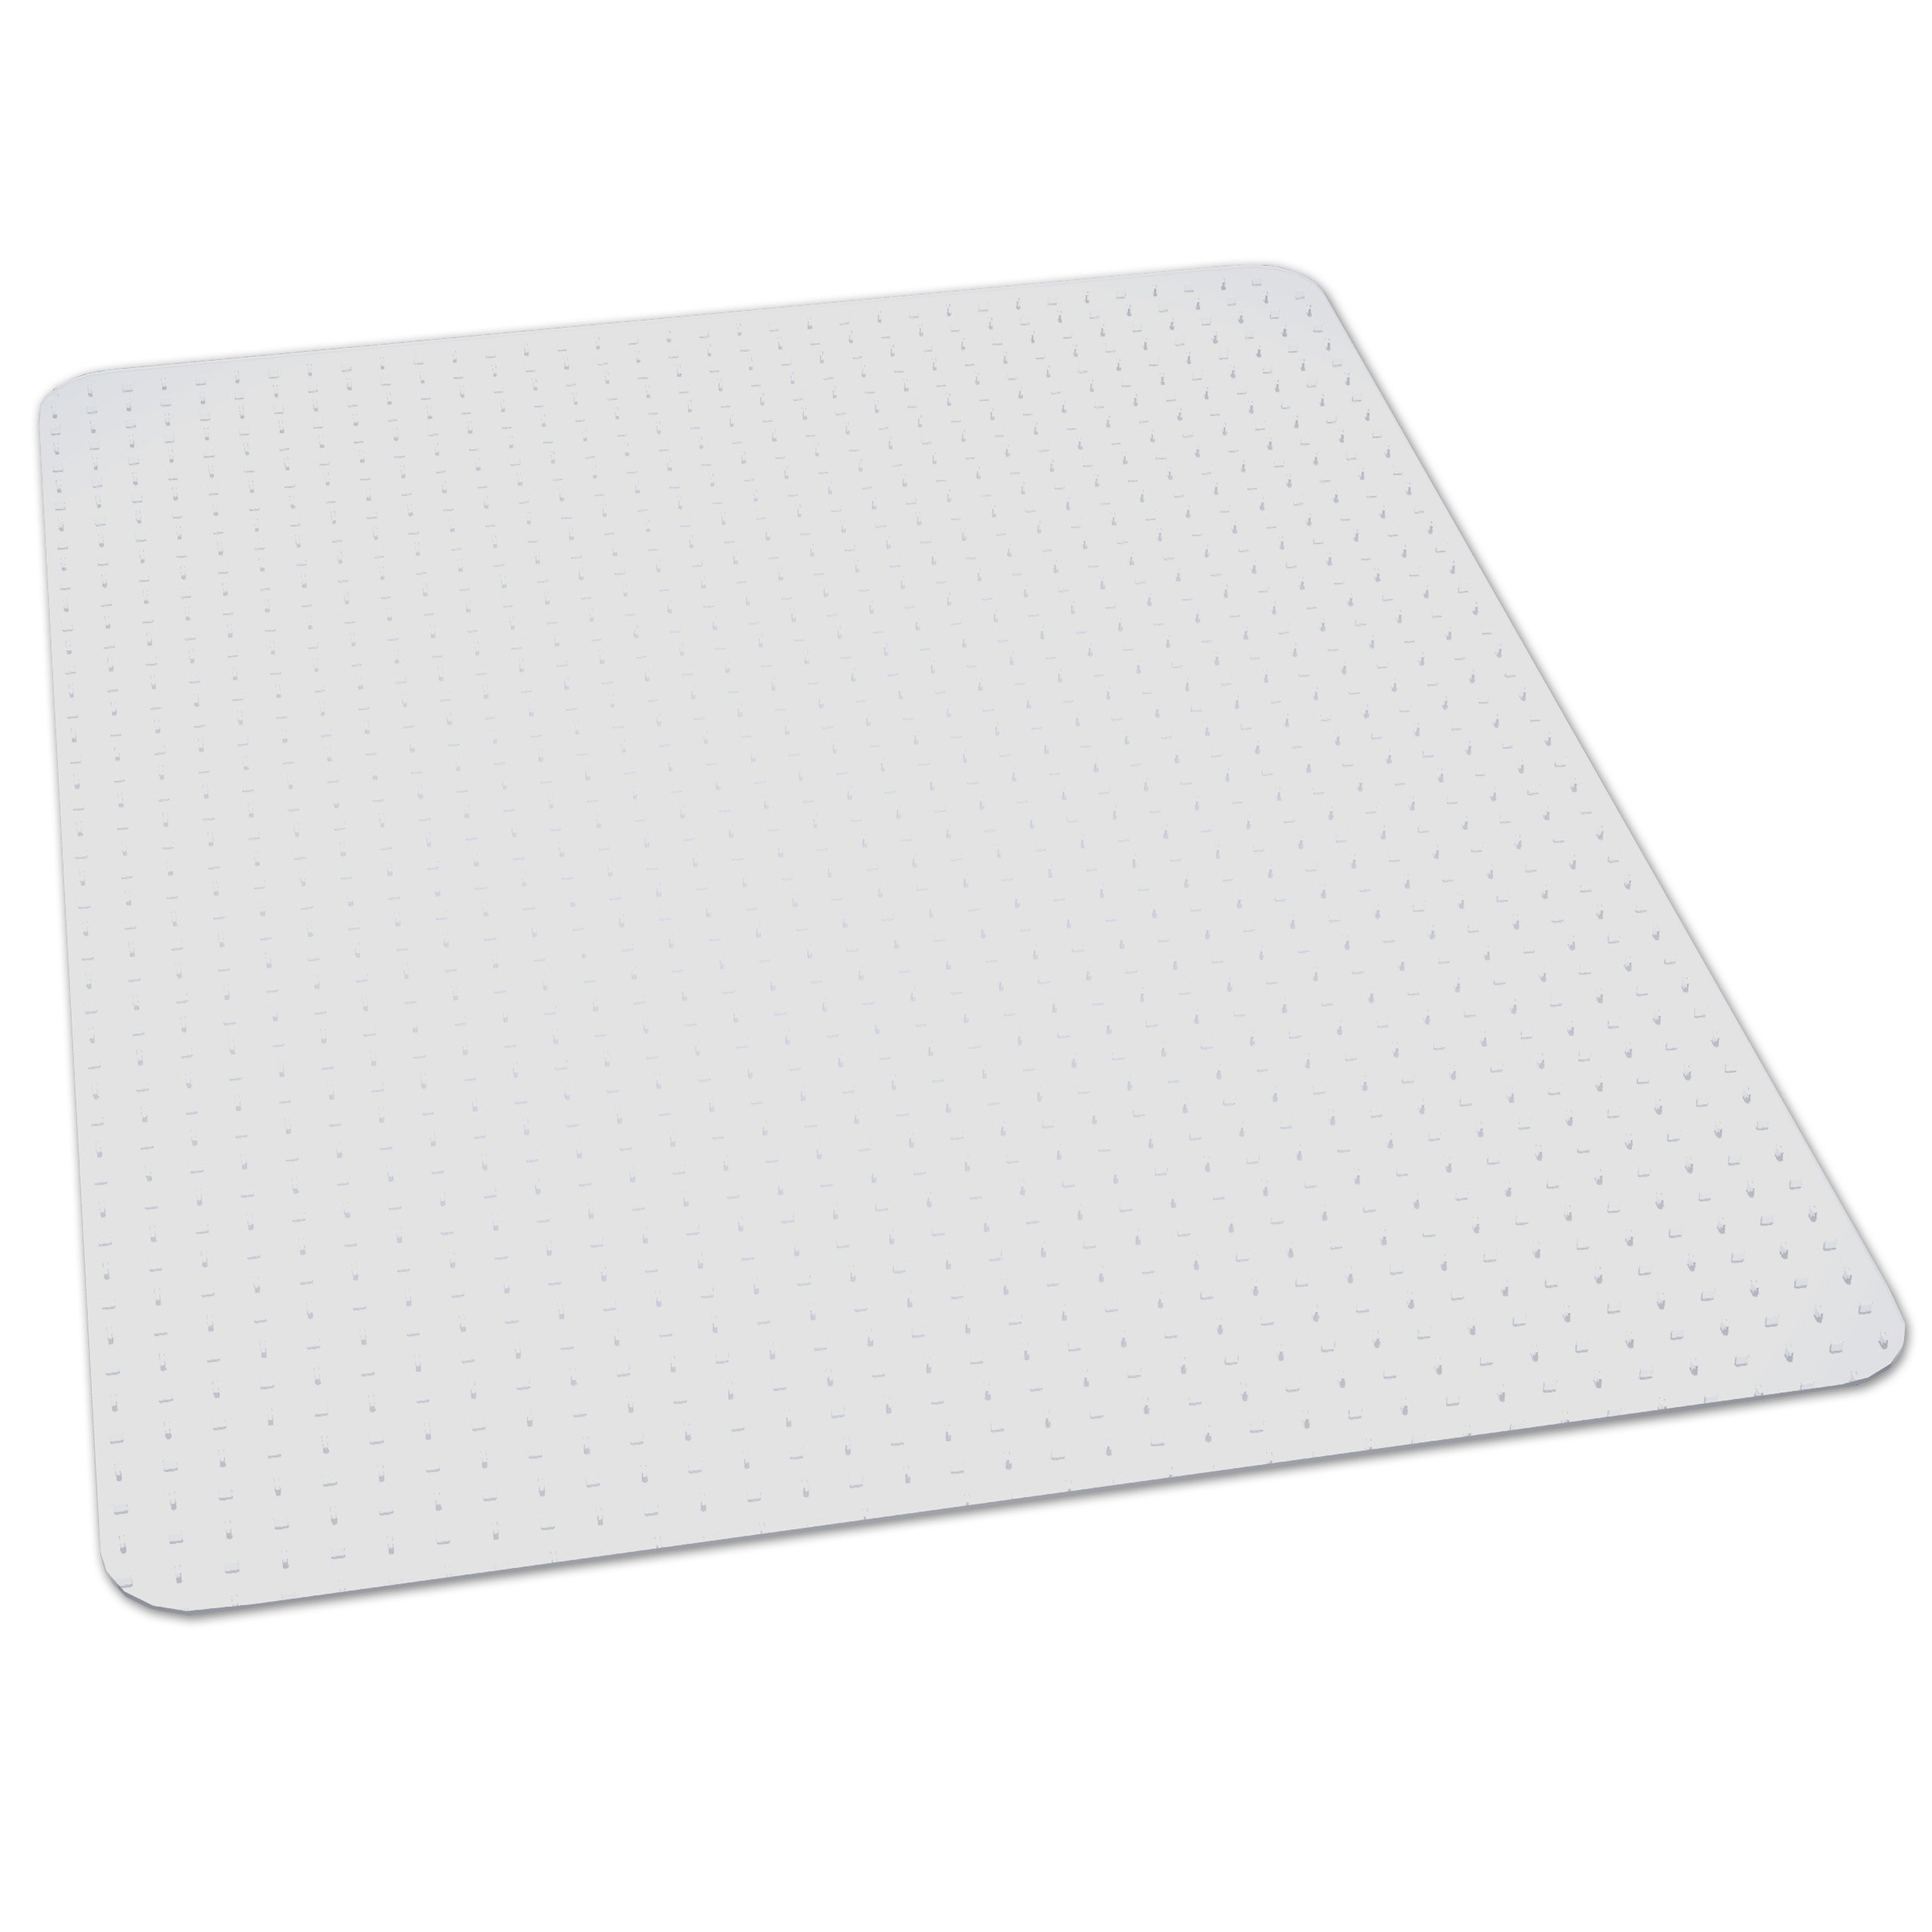 ES Robbins Rectangle Vinyl Chair Mat for Extra-High Pile Carpet, 46-Inch by 60-Inch, Clear